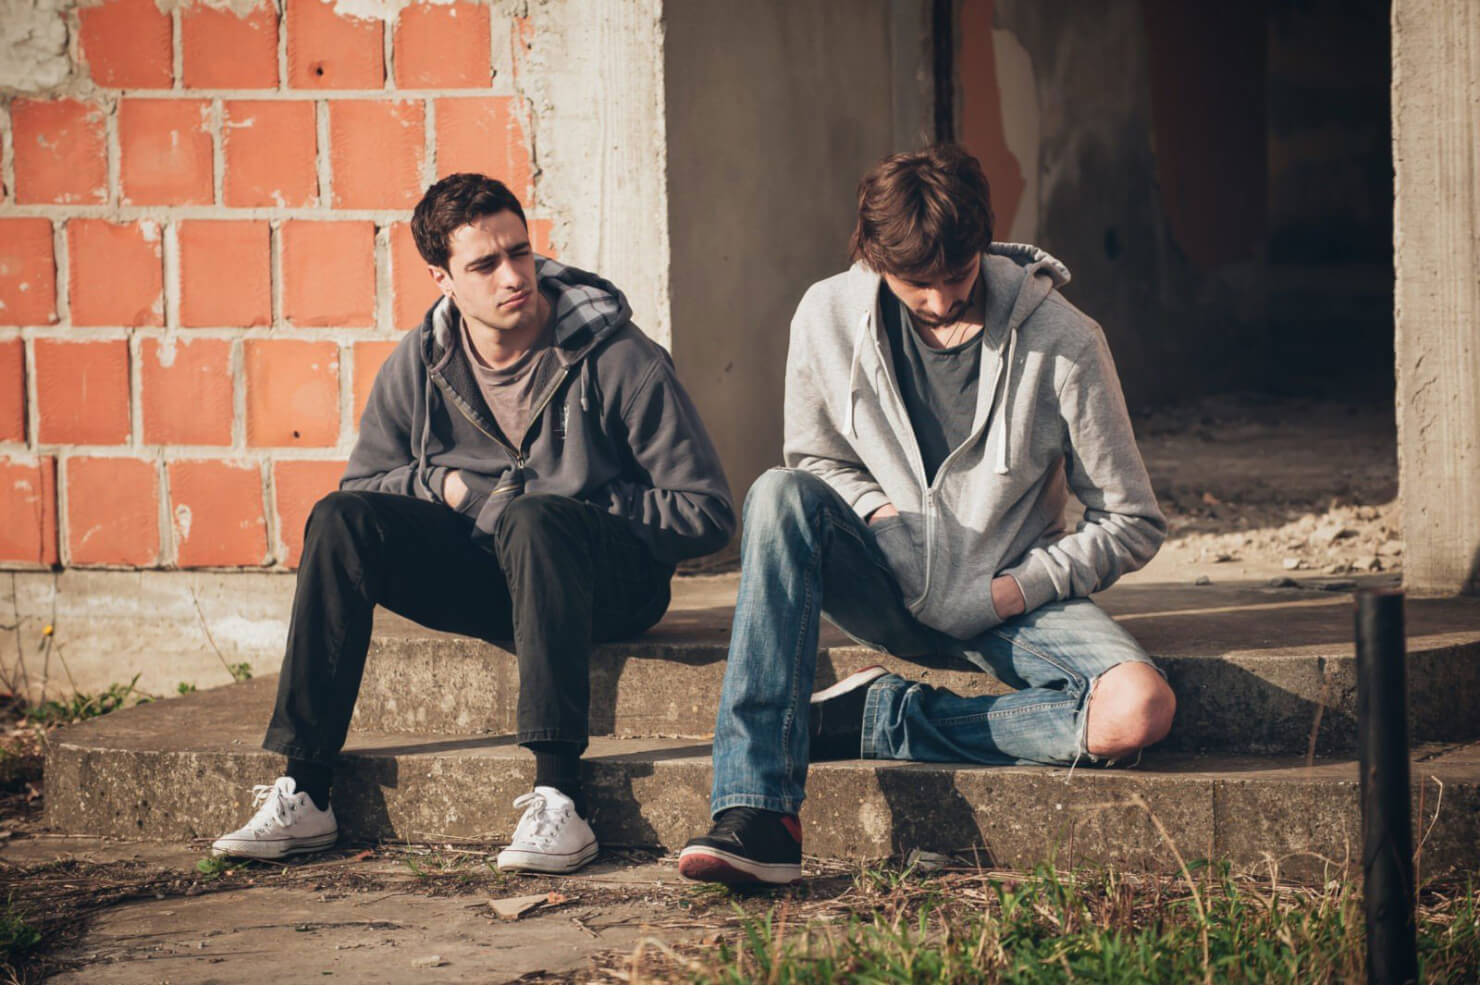 Two men sitting against a brick wall